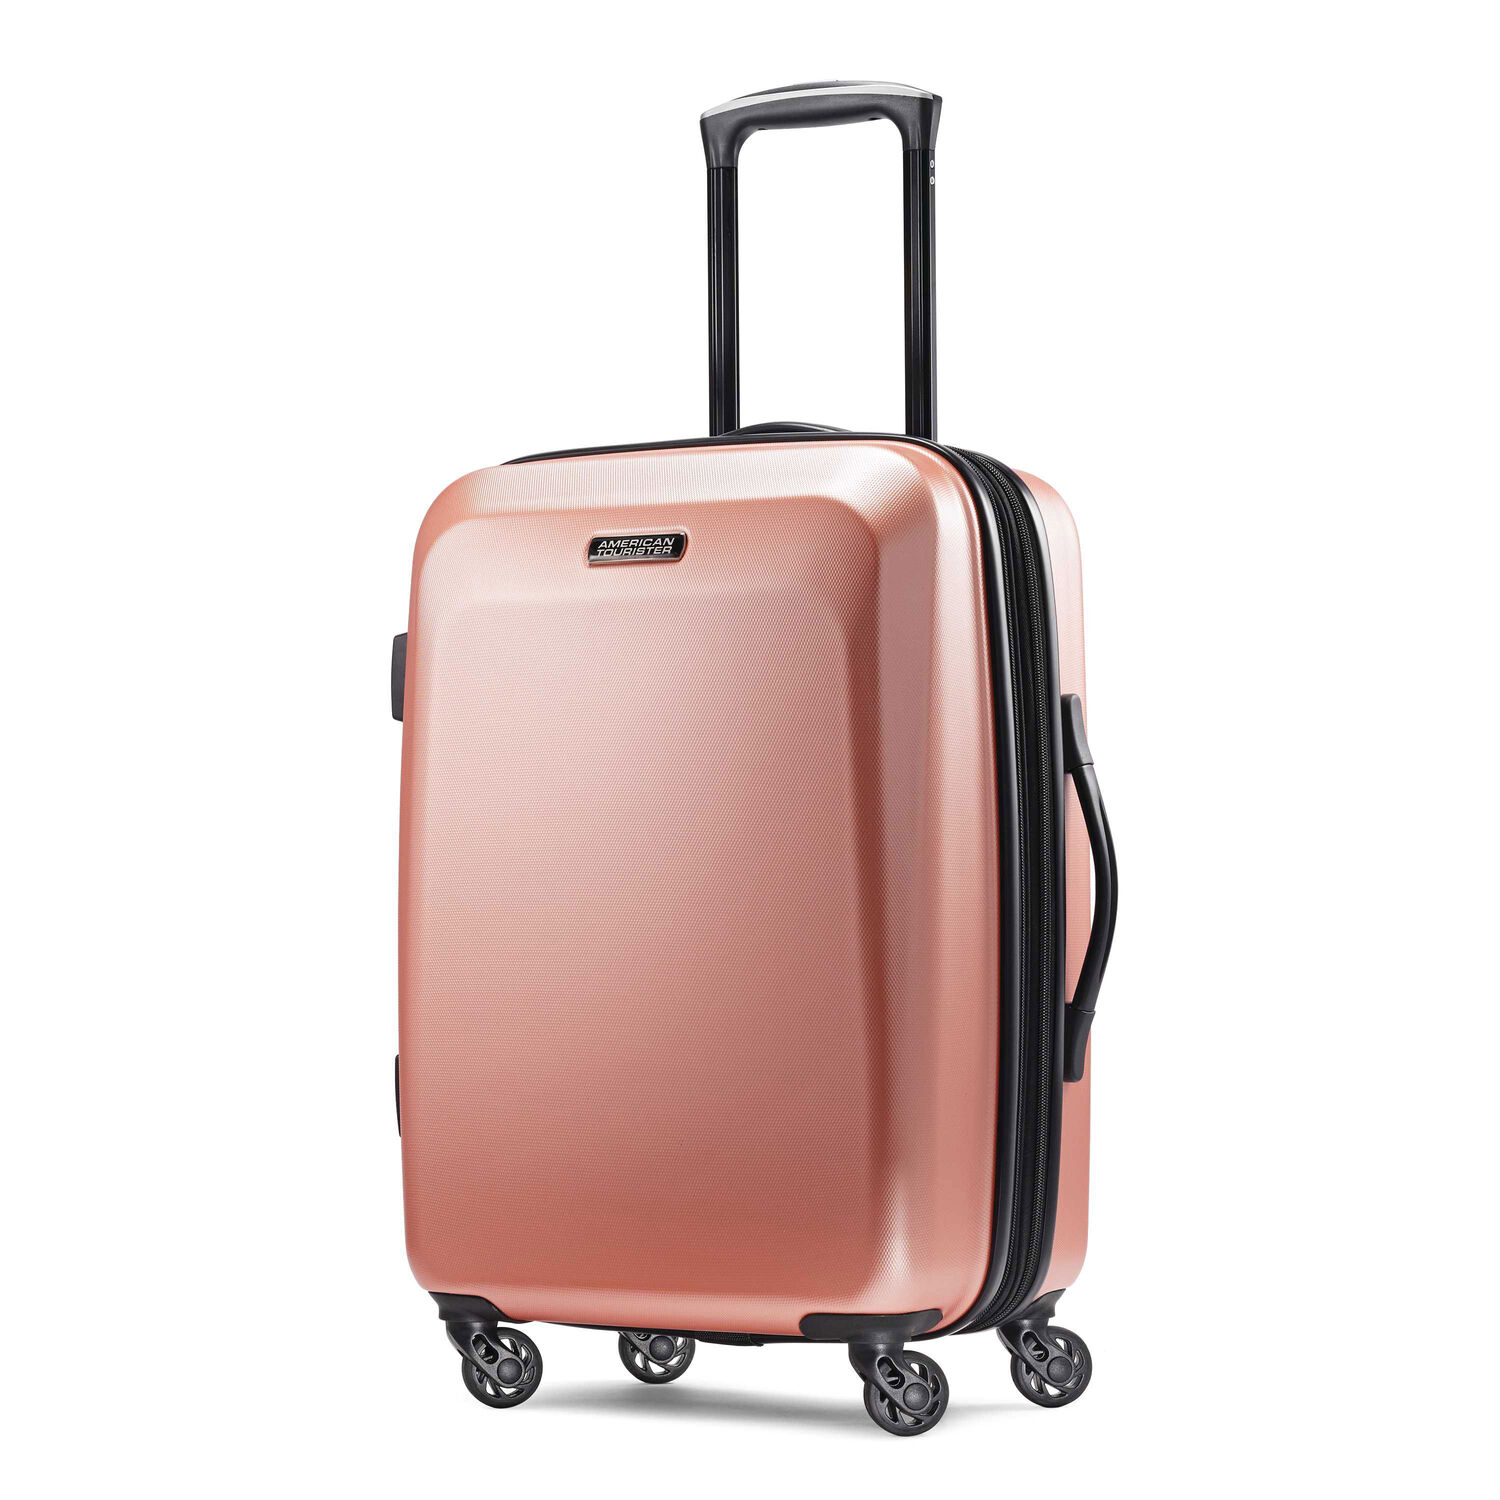 b1e7d9ffd000 American Tourister Moonlight 21